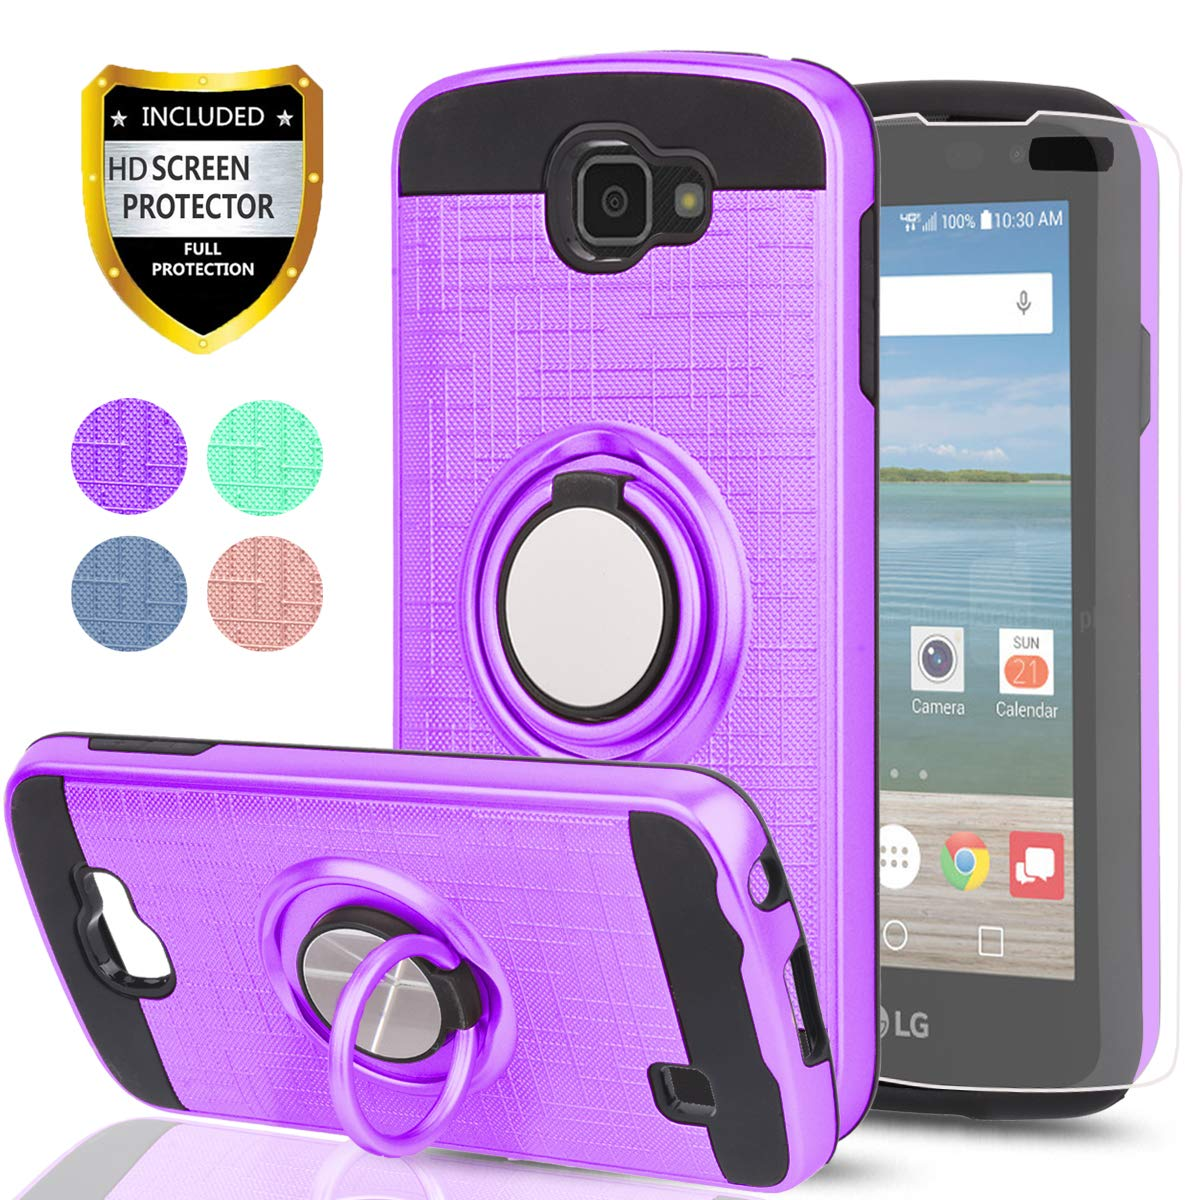 YmhxcY LG Optimus Zone 3 Case, LG Spree Case,LG Rebel LTE Case with HD Phone Screen Protector, 360 Degree Rotating Ring & Bracket Dual Layer Resistant Back Cover for LG K4 (2016)/VS425-ZH Purple